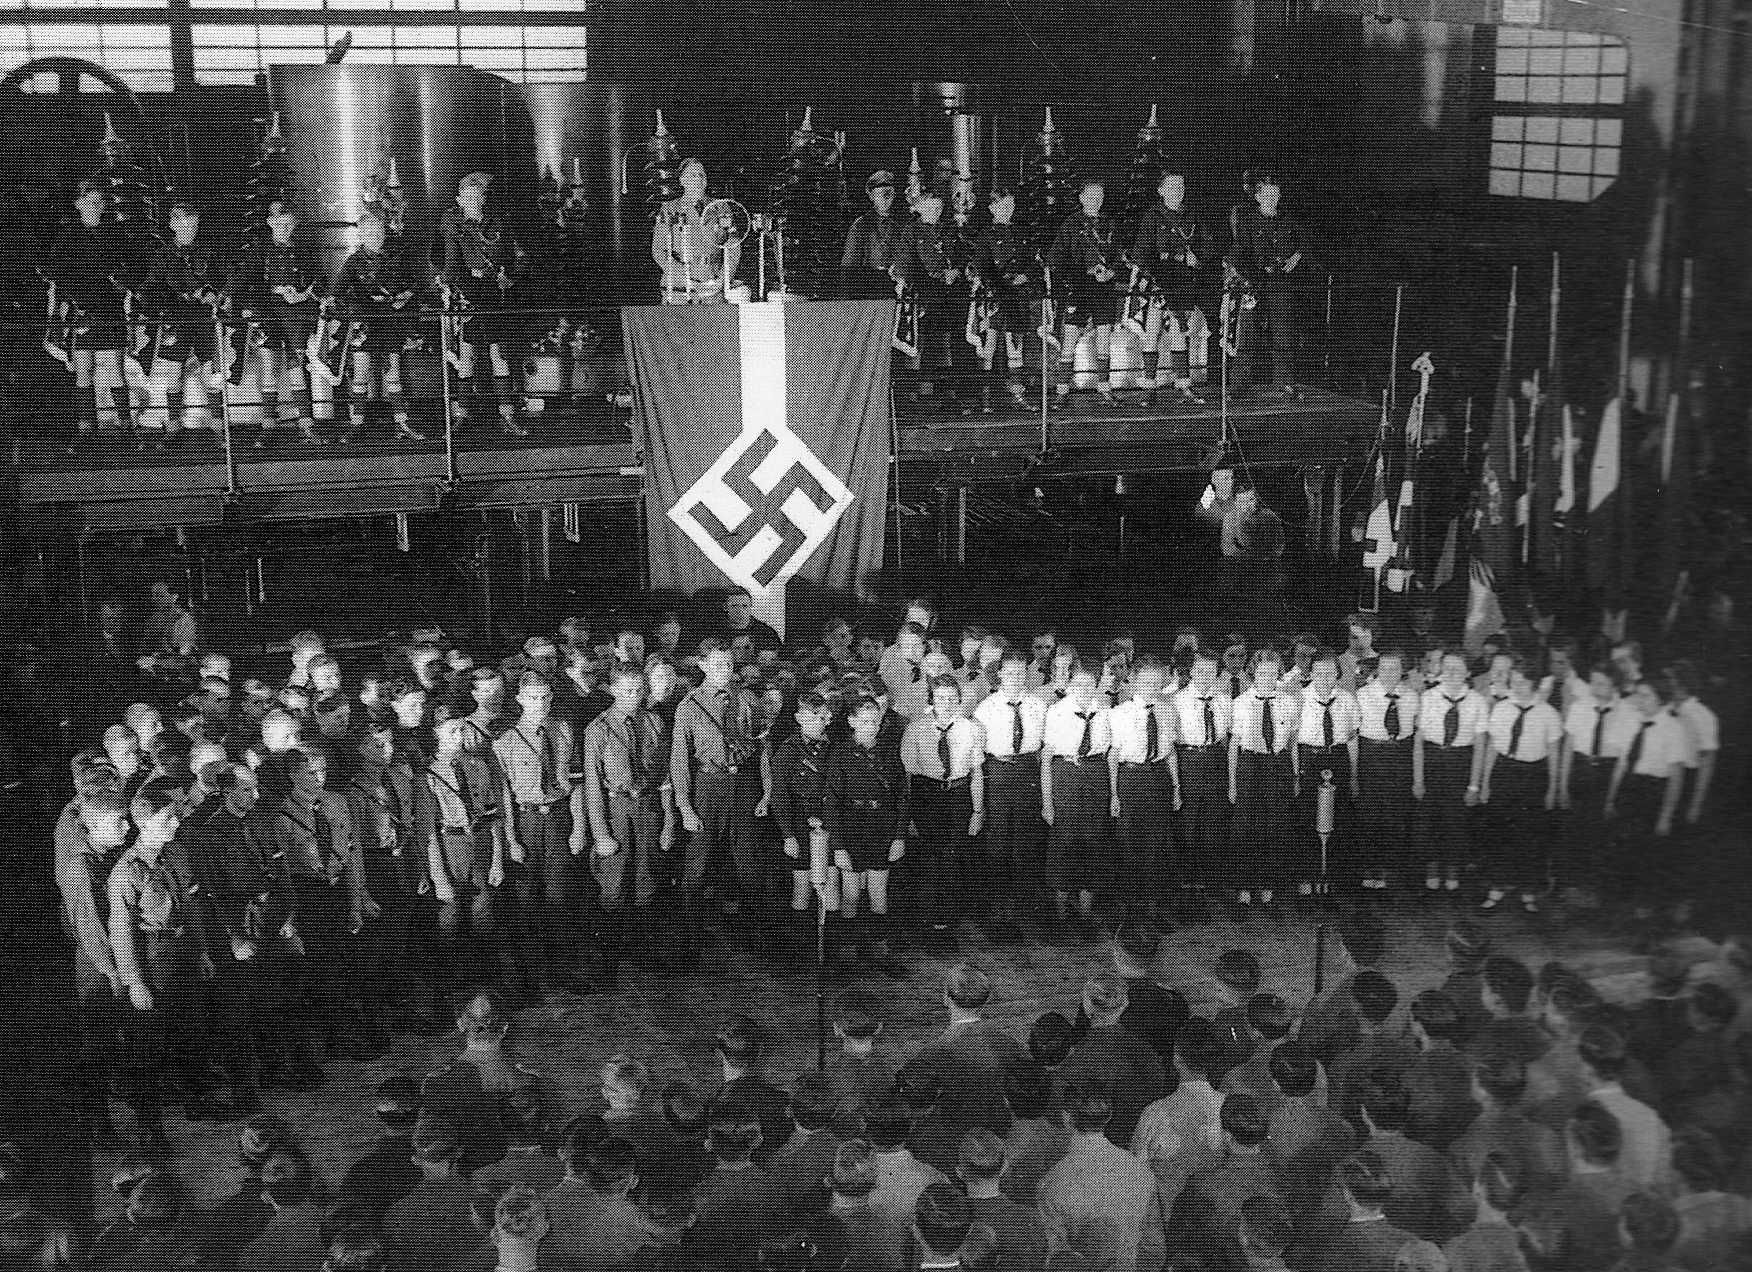 militaryhistoryonline com wwii images bdm jpg hitler a hitler youth pledge ceremony used as research for risking exposure by jeanne moran